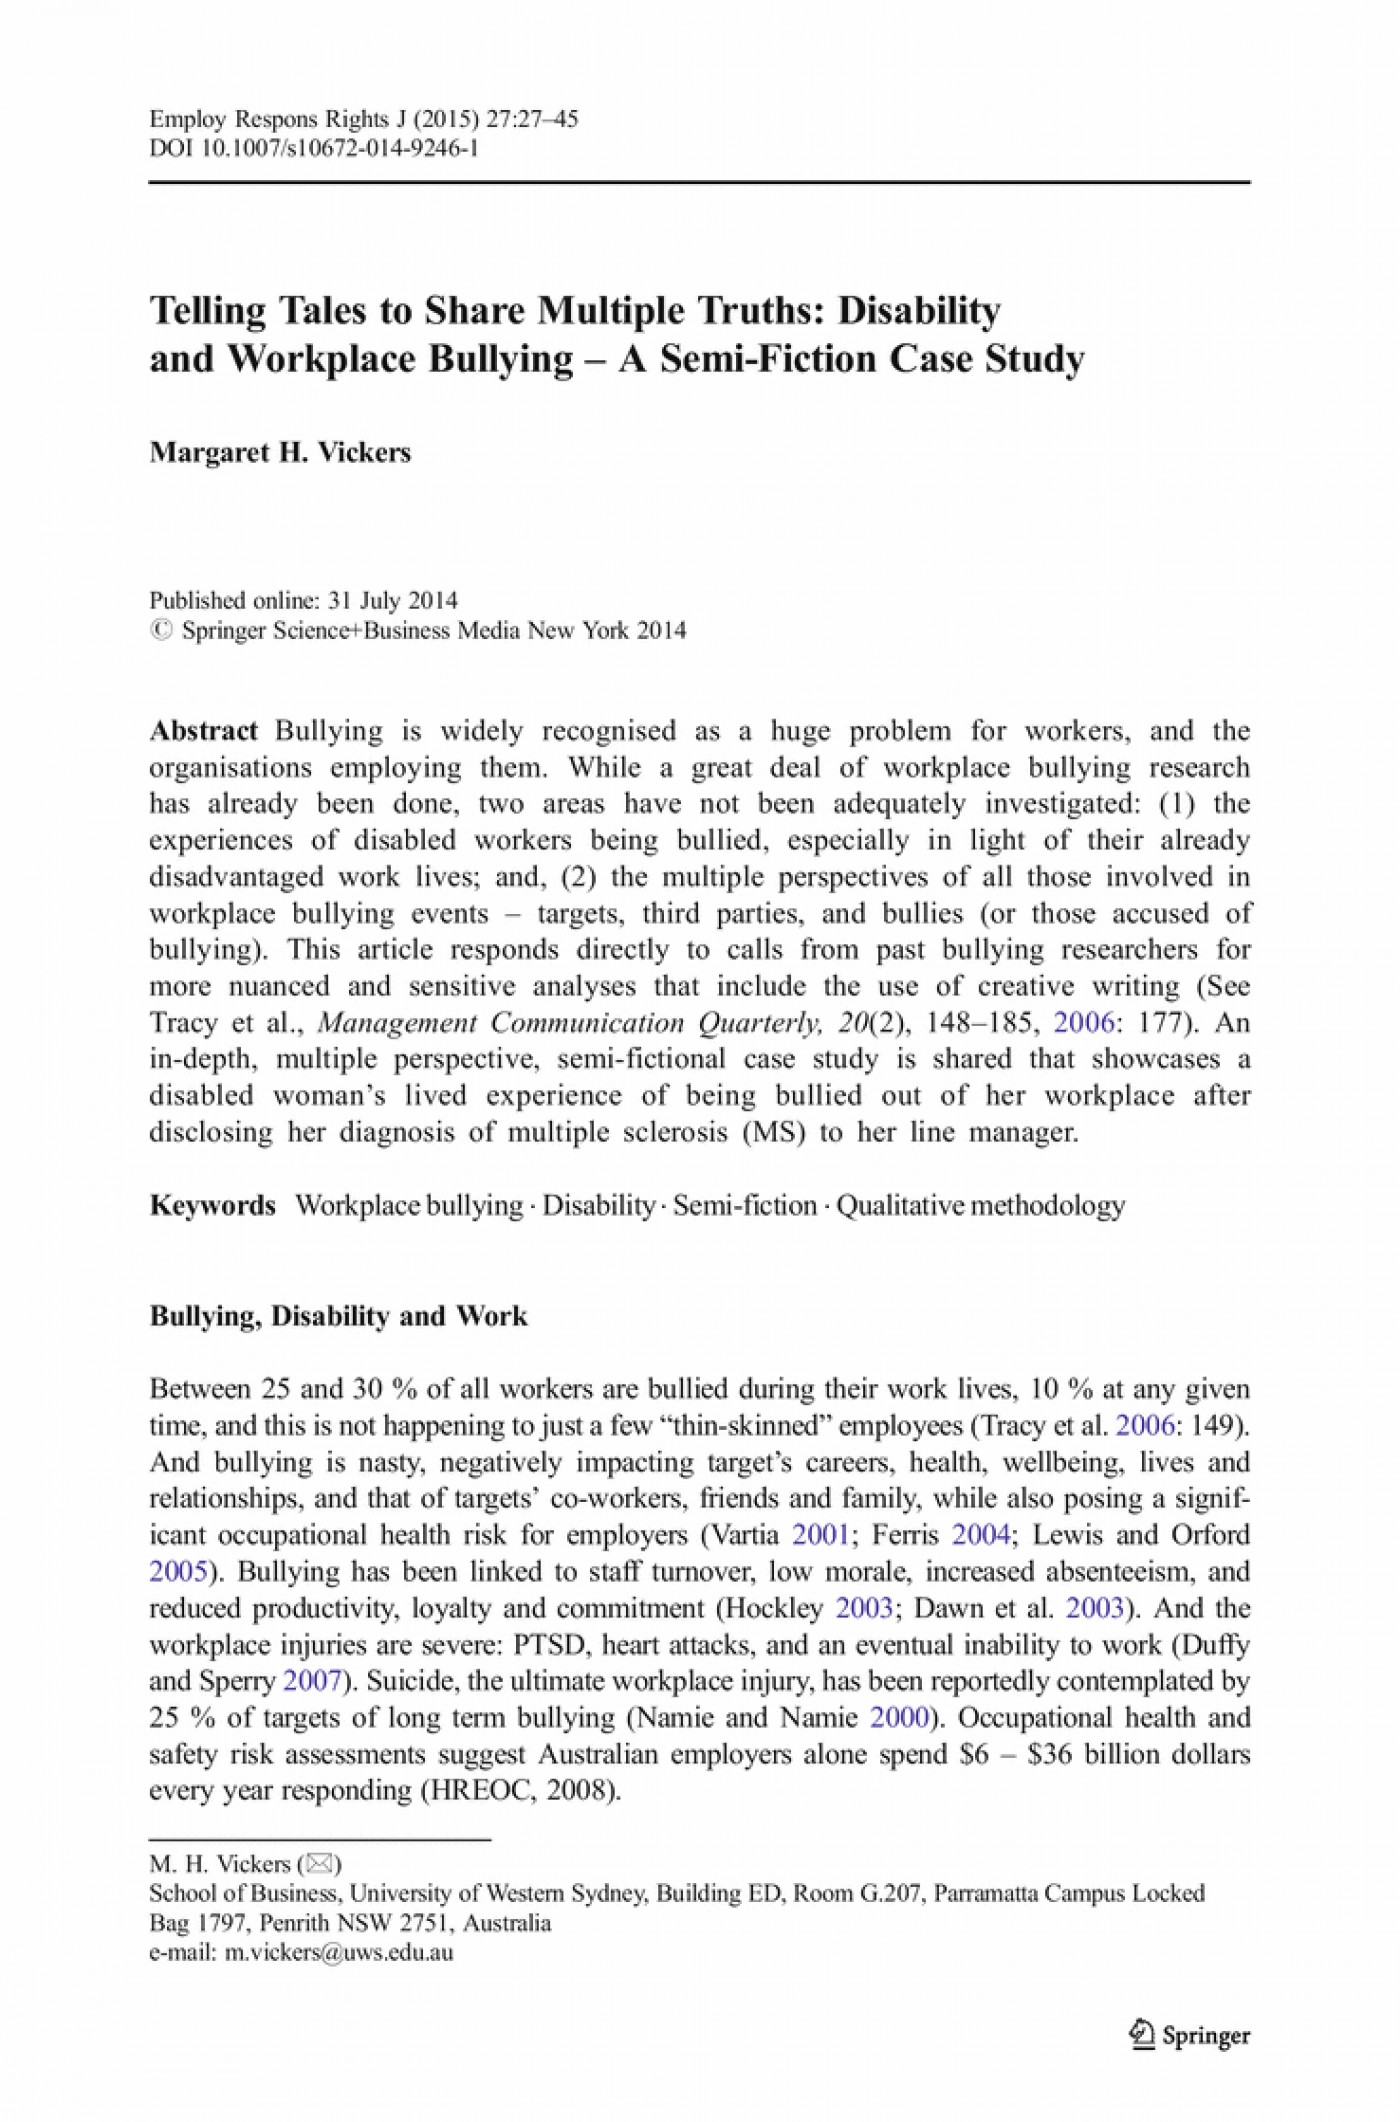 009 Cyberbullying Research Paper Pdf Narrative Essay Bullying Buy Original Conclusion To L Unique Effects Of 1400